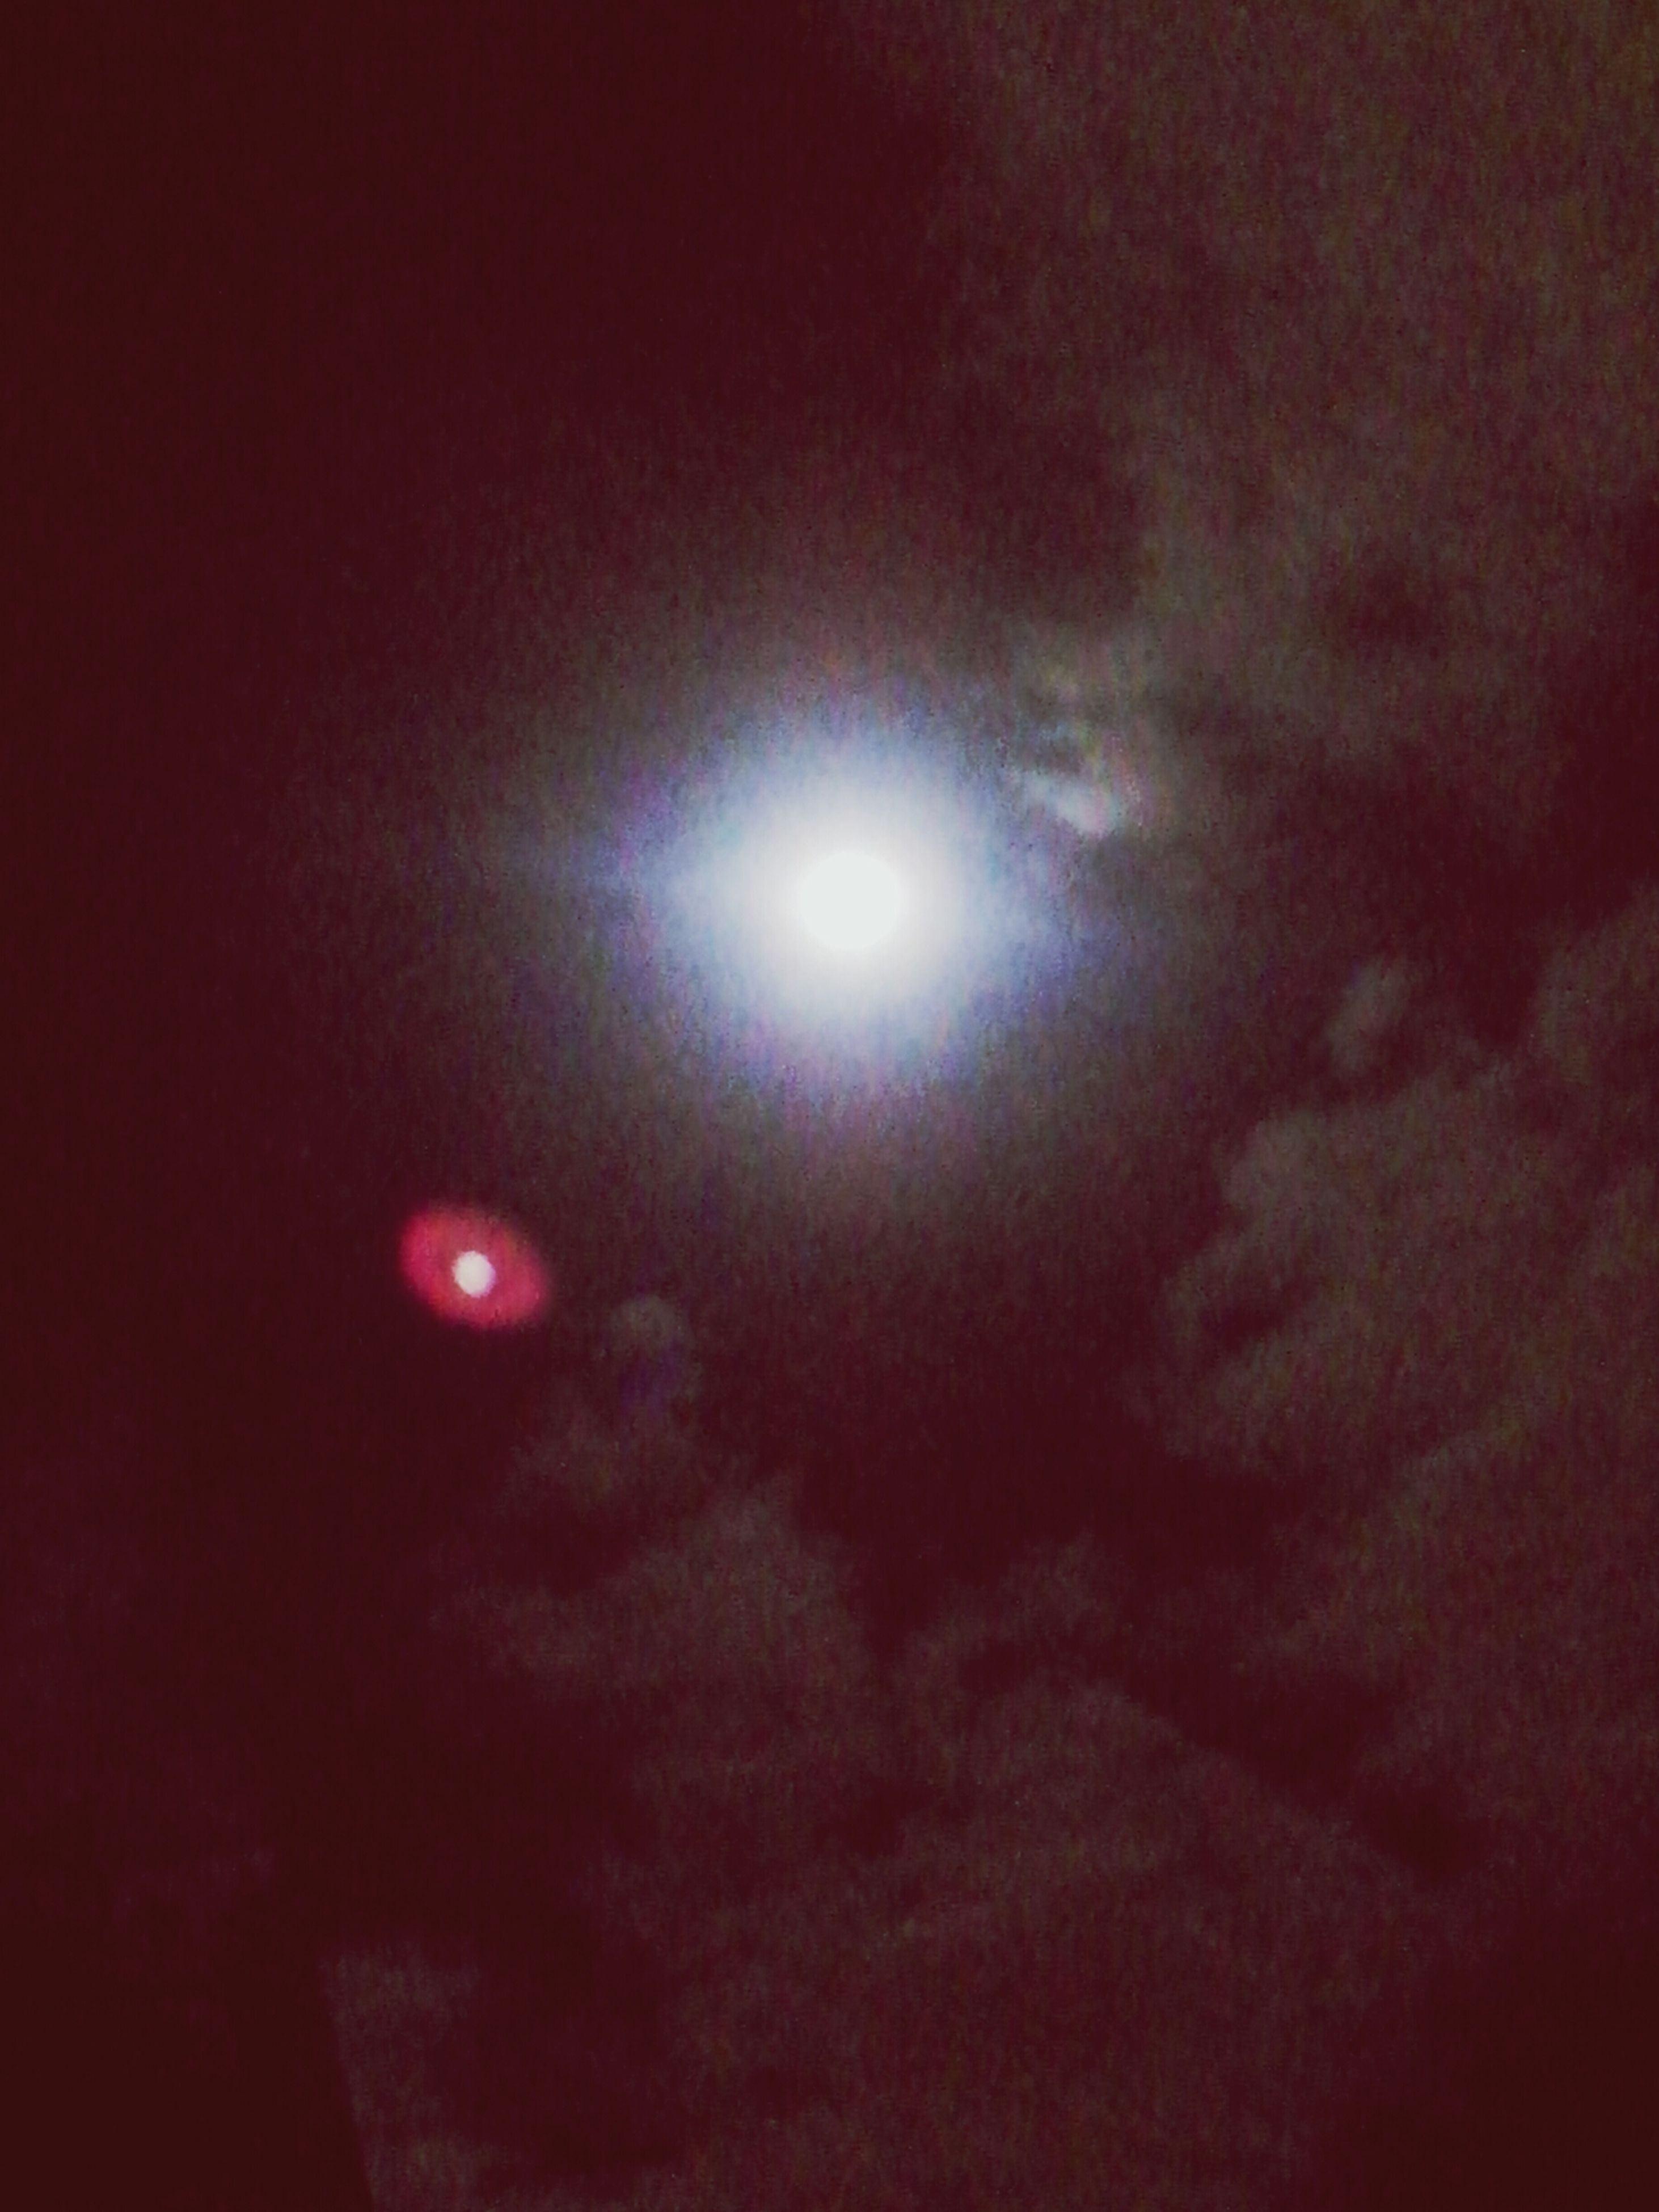 low angle view, sky, night, illuminated, moon, red, sun, lighting equipment, weather, beauty in nature, nature, glowing, cloud - sky, sky only, scenics, no people, light - natural phenomenon, lens flare, dark, tranquility